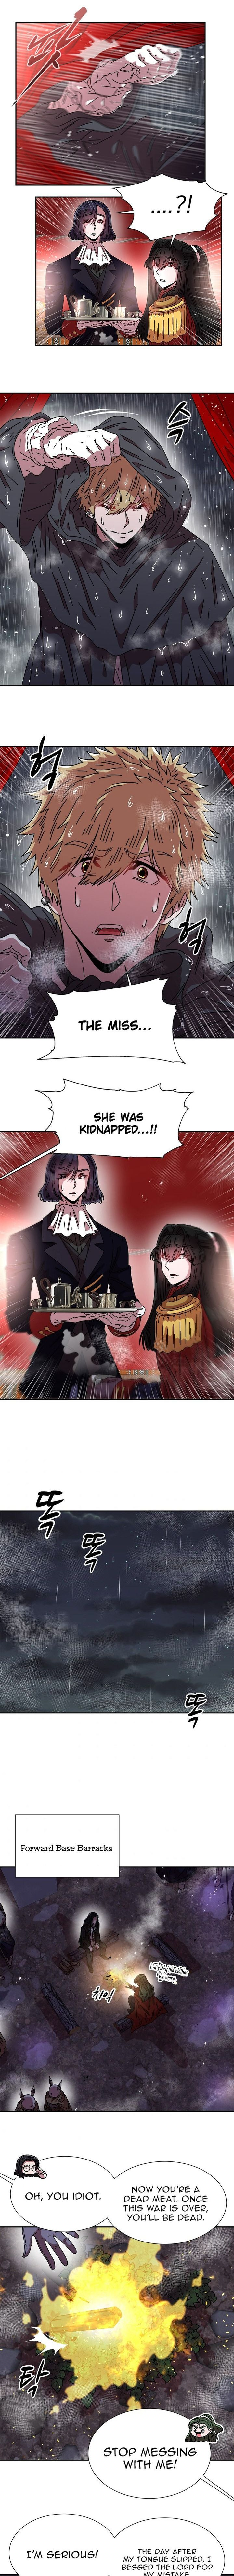 i_was_born_as_the_demon_lords_daughter_47_1